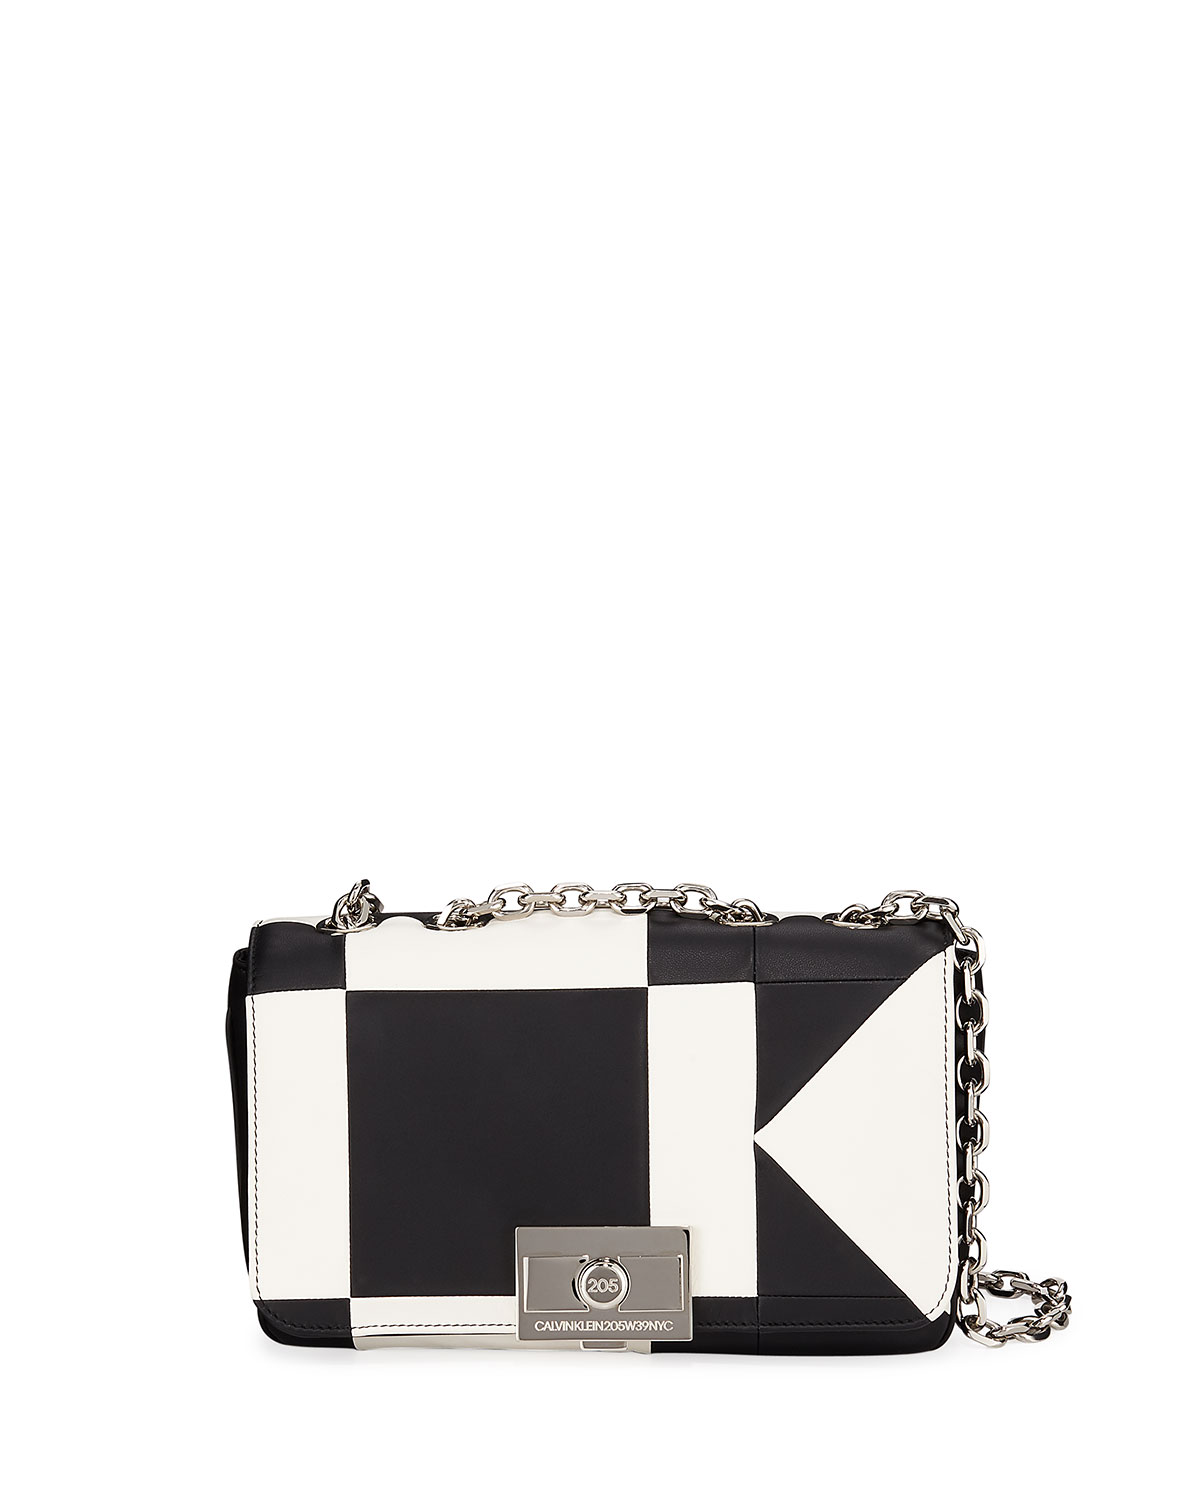 Billie Colorblock Leather Shoulder Bag in White/Black